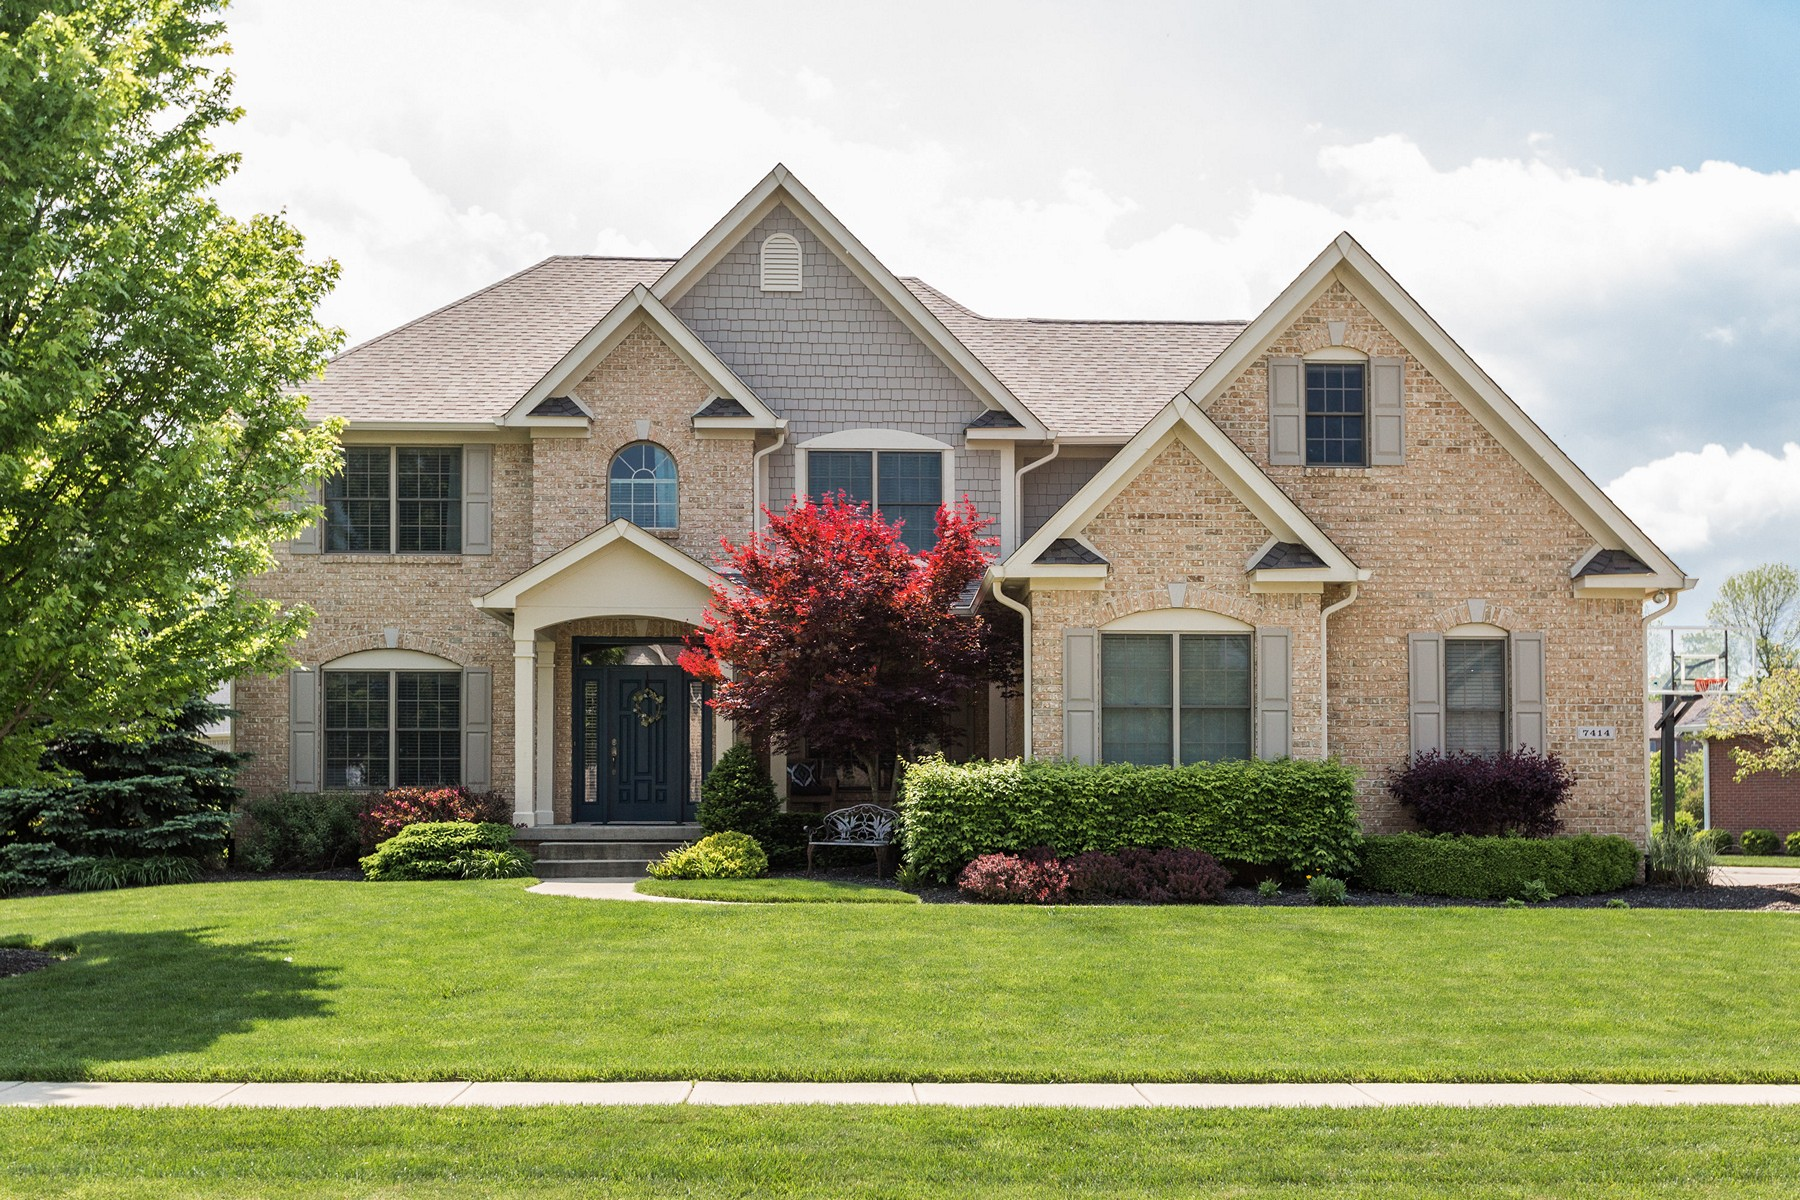 Single Family Home for Sale at Gorgeous Home Ready For You 7414 Stones River Drive Indianapolis, Indiana, 46259 United States